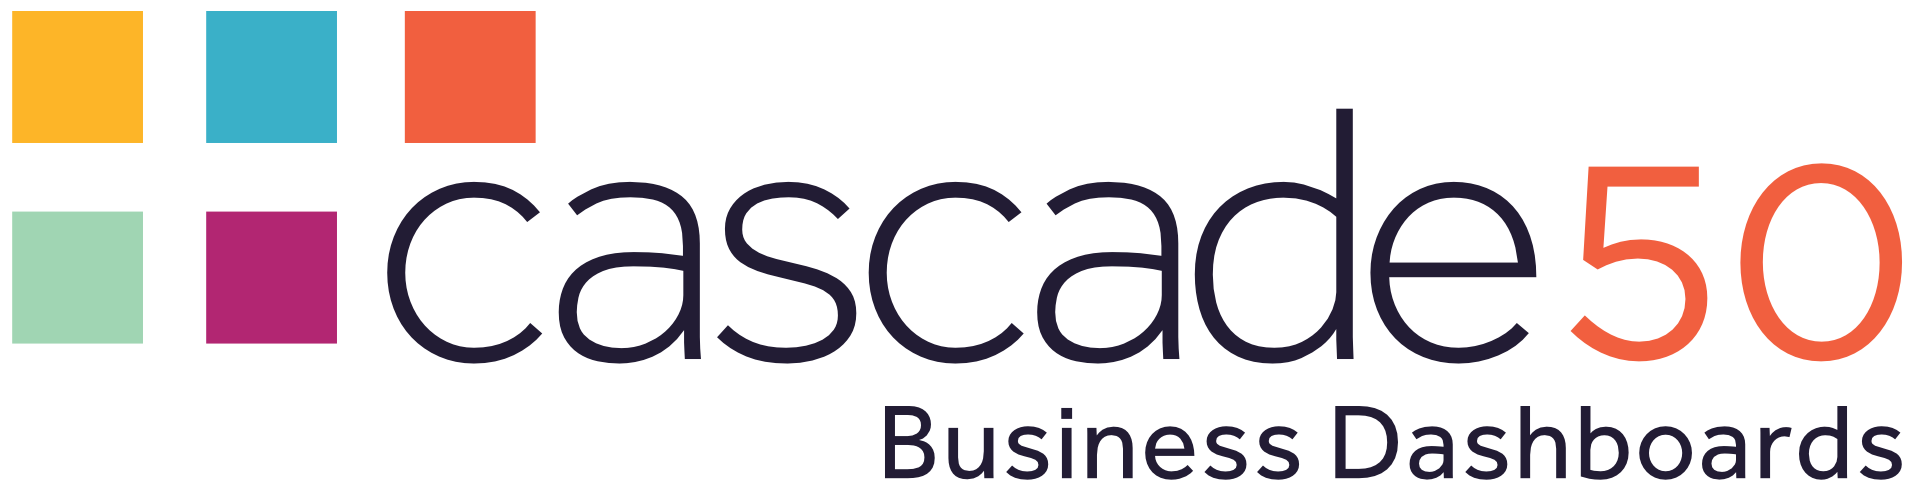 Cascade50 - Sage Dashboards Help Centre home page